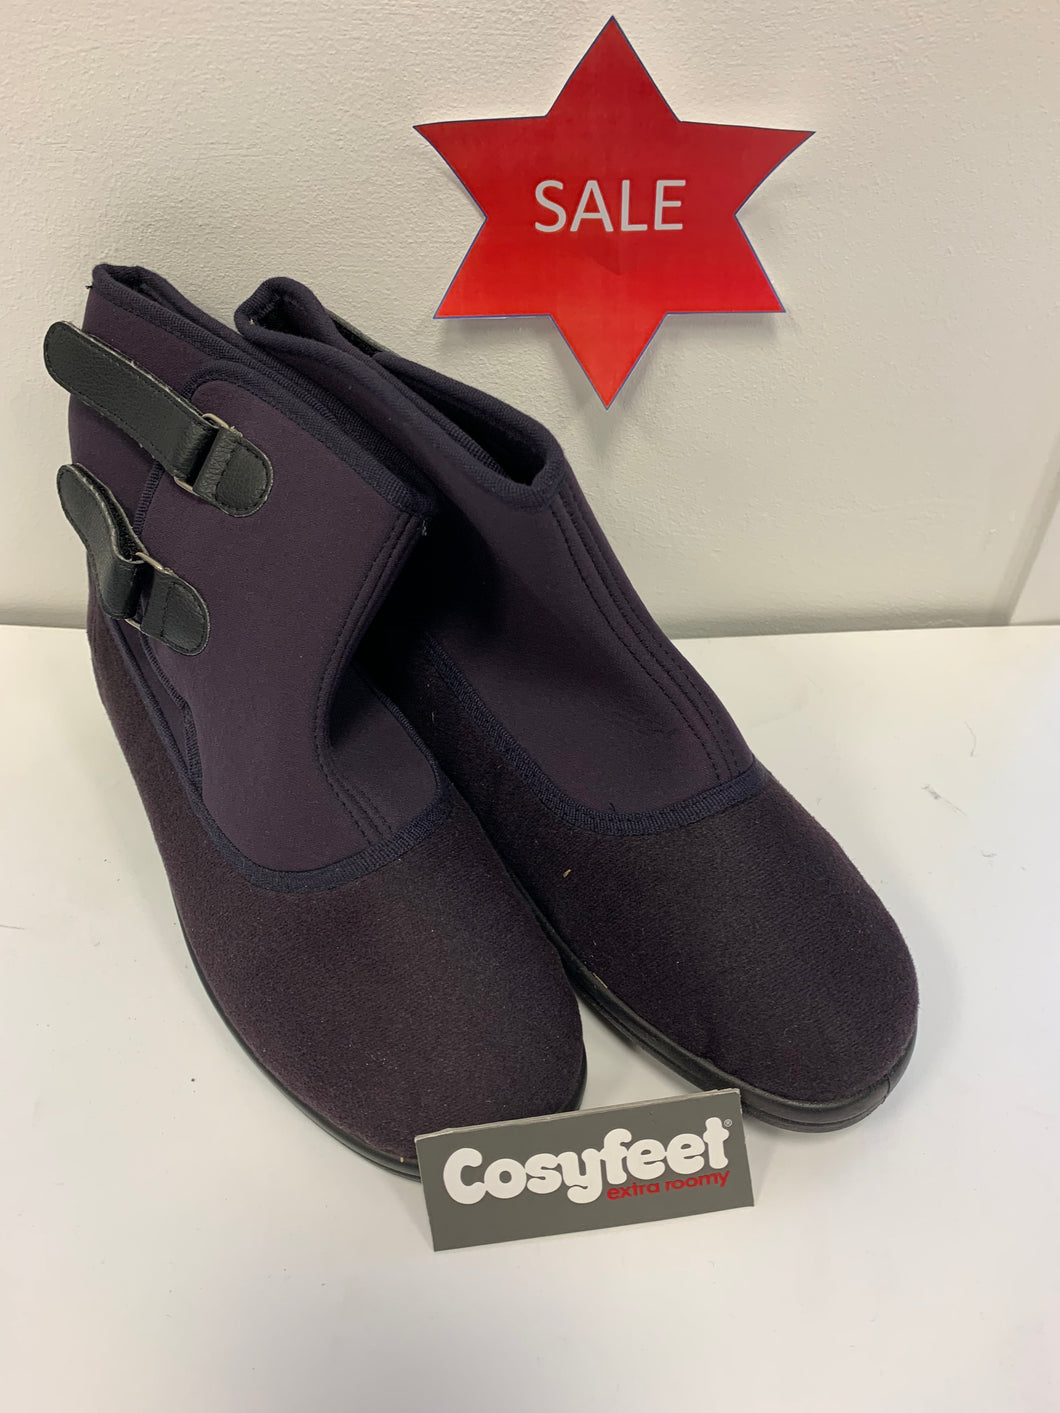 Cosyfeet - Pixie, Loganberry (Size 7)